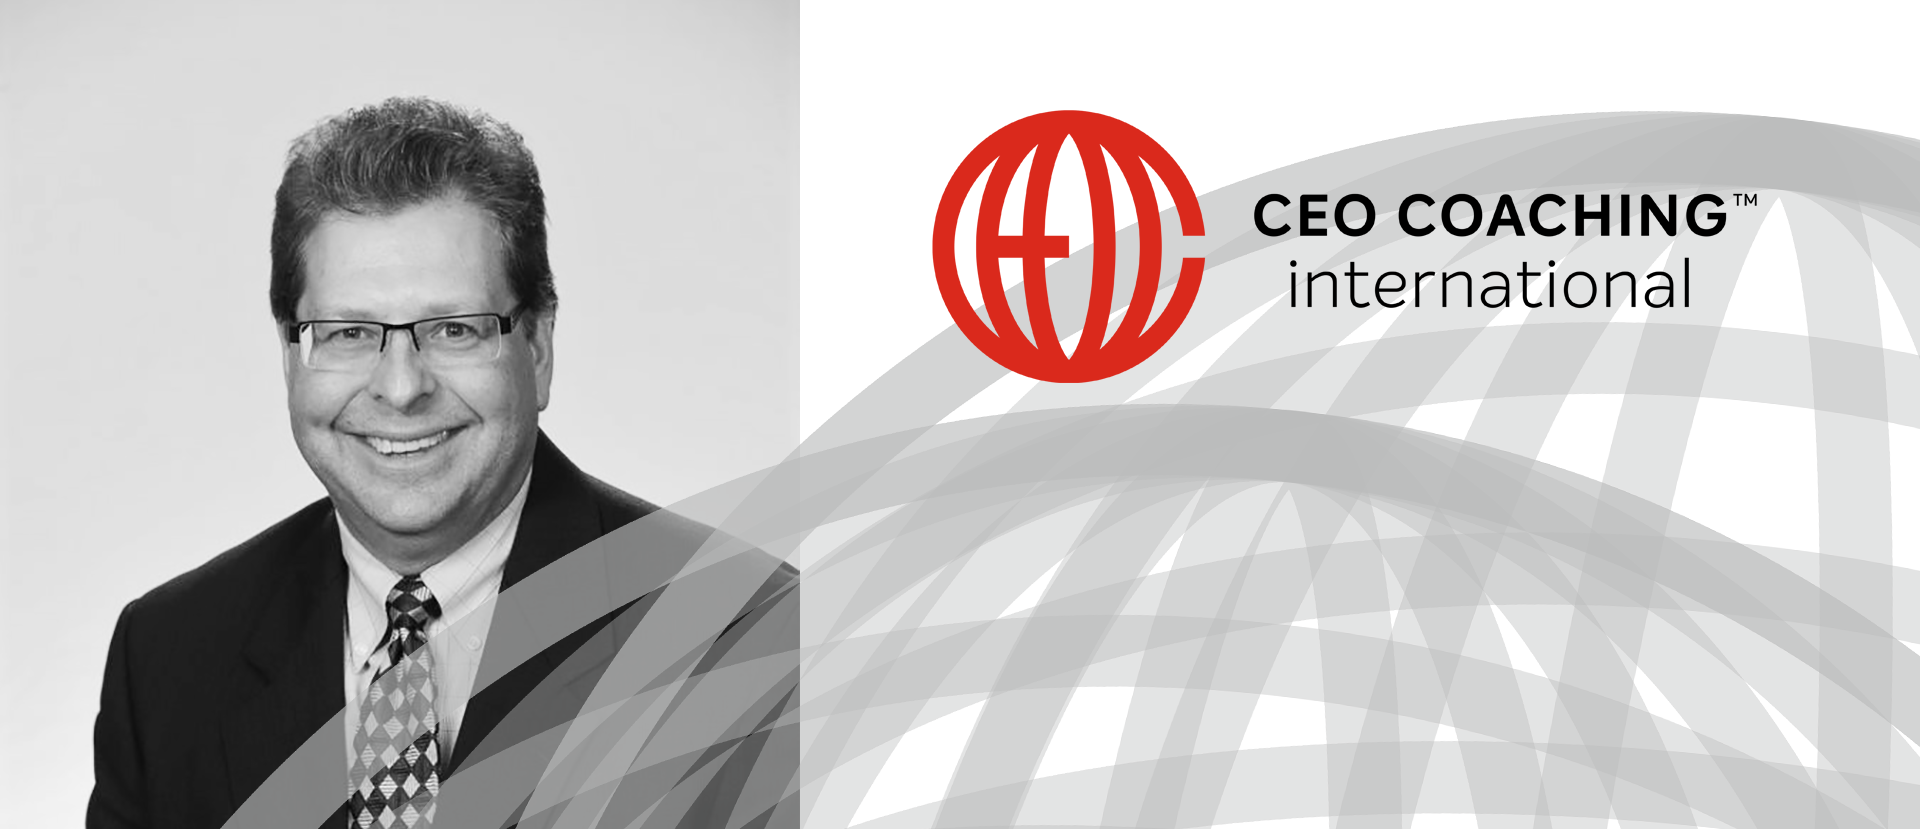 Mike Marchi Joins CEO Coaching International